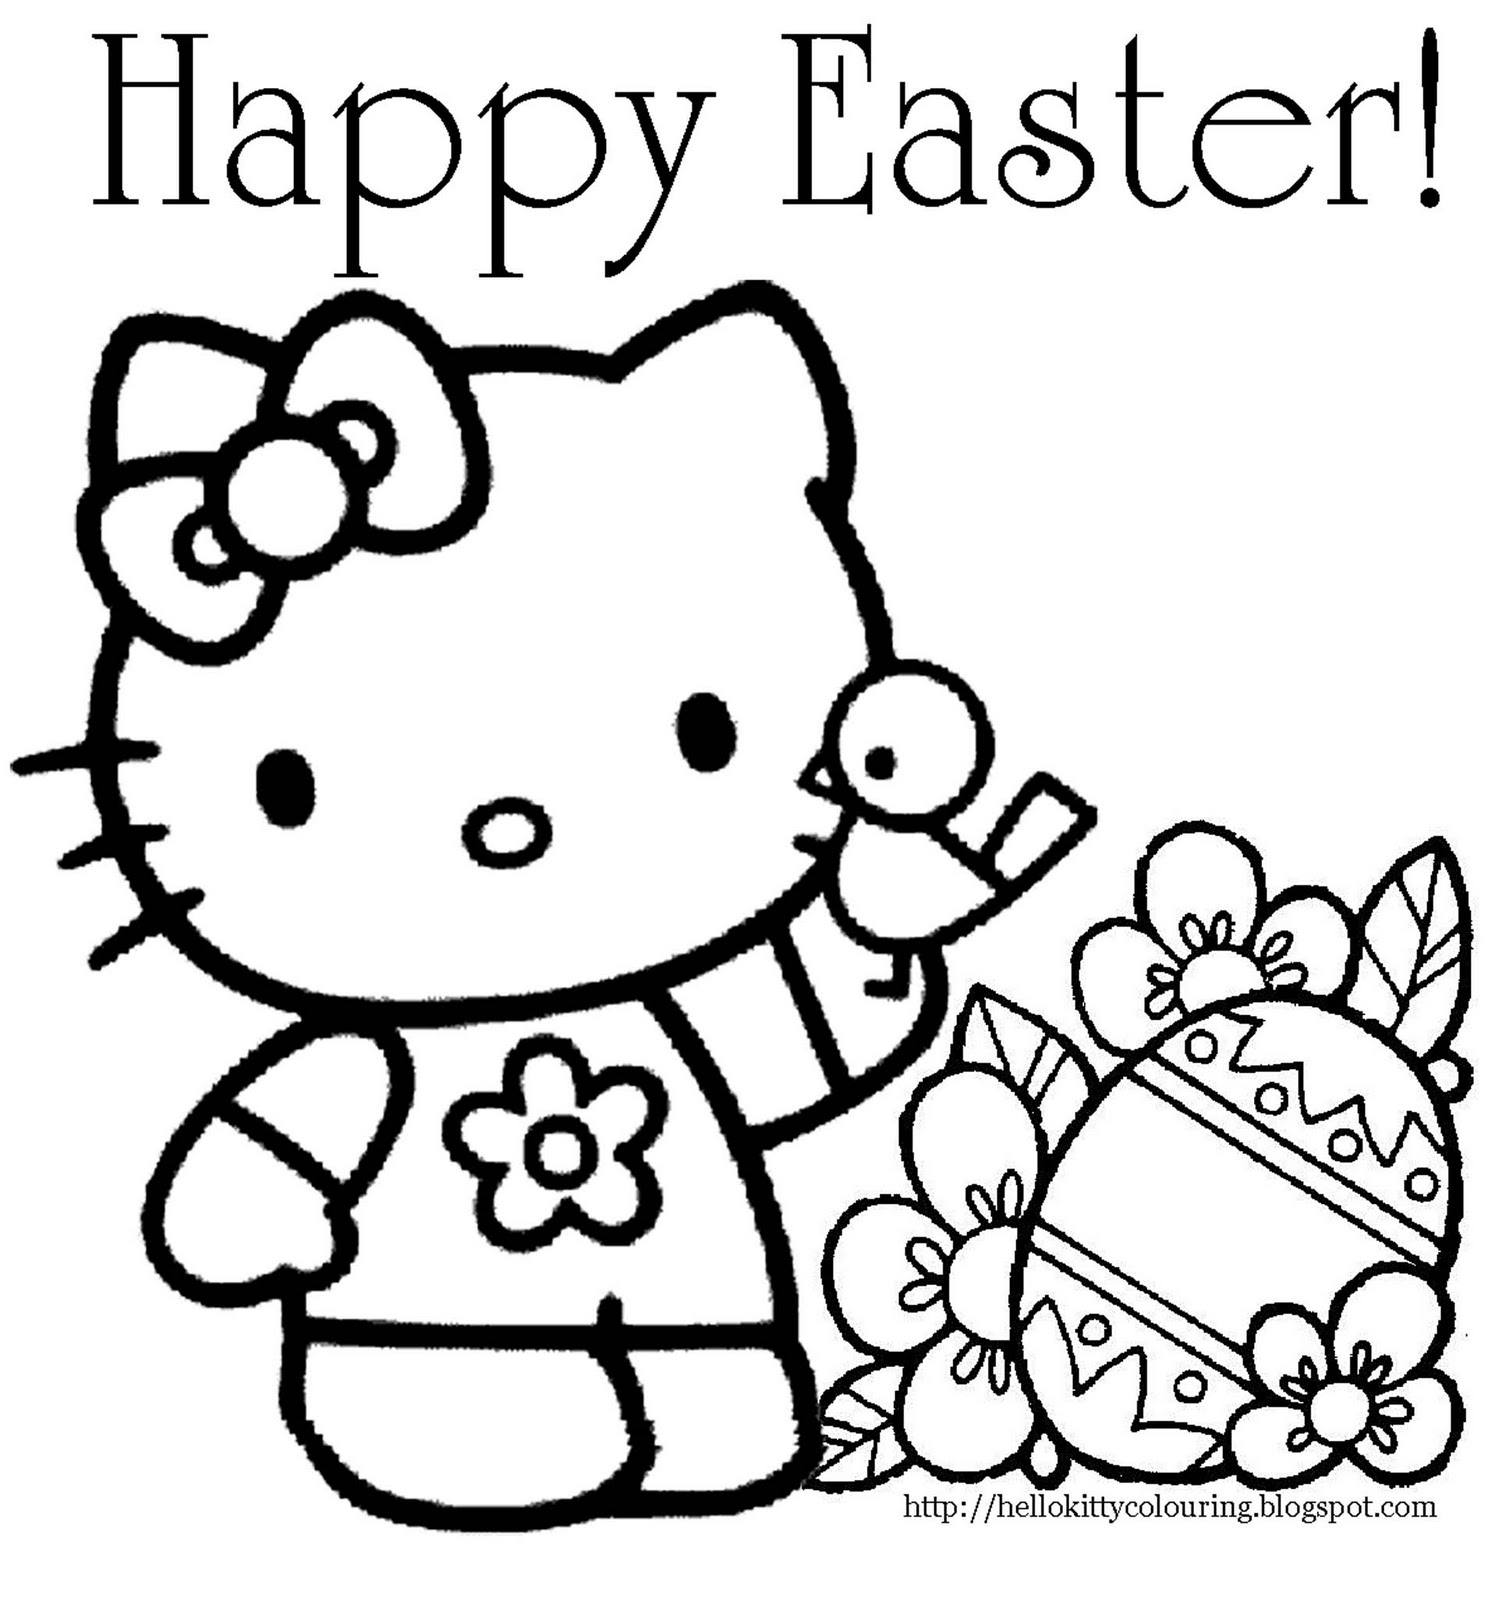 printable coloring pages of hello kitty - Hello Kitty on Pinterest Hello Kitty, Coloring Pages and